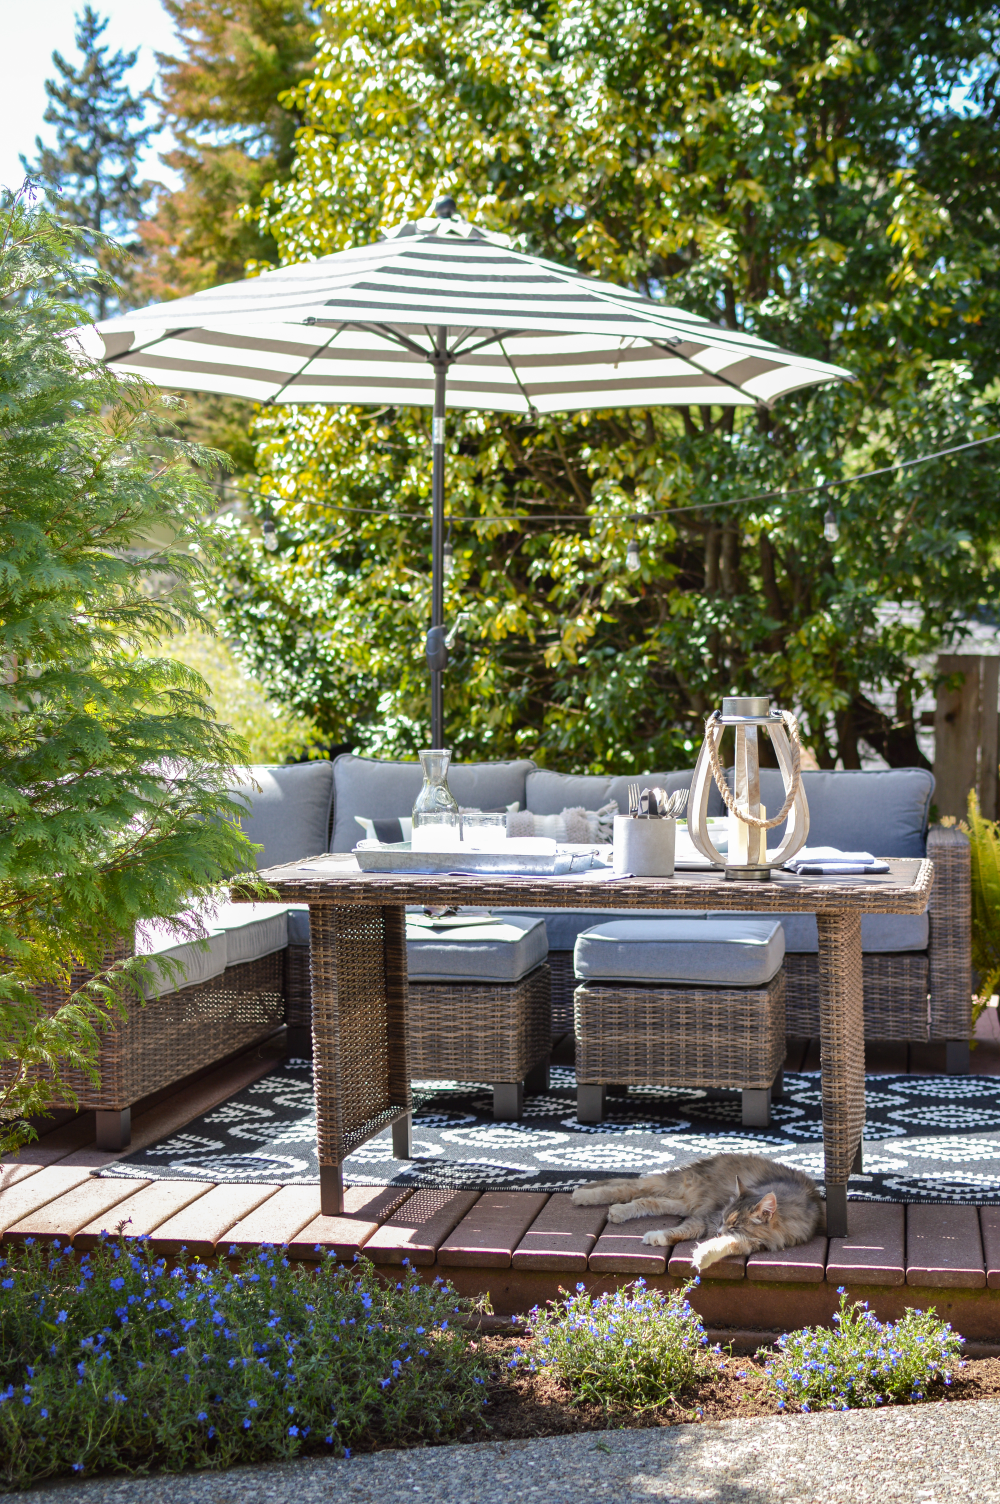 Everything You Need To Be Ready To Enjoy Your Porch And Patio Spaces Entertain And Relax Morning Til Night On A Budget With Better Homes Gardens Outdoor Furniture Ideas Backyards